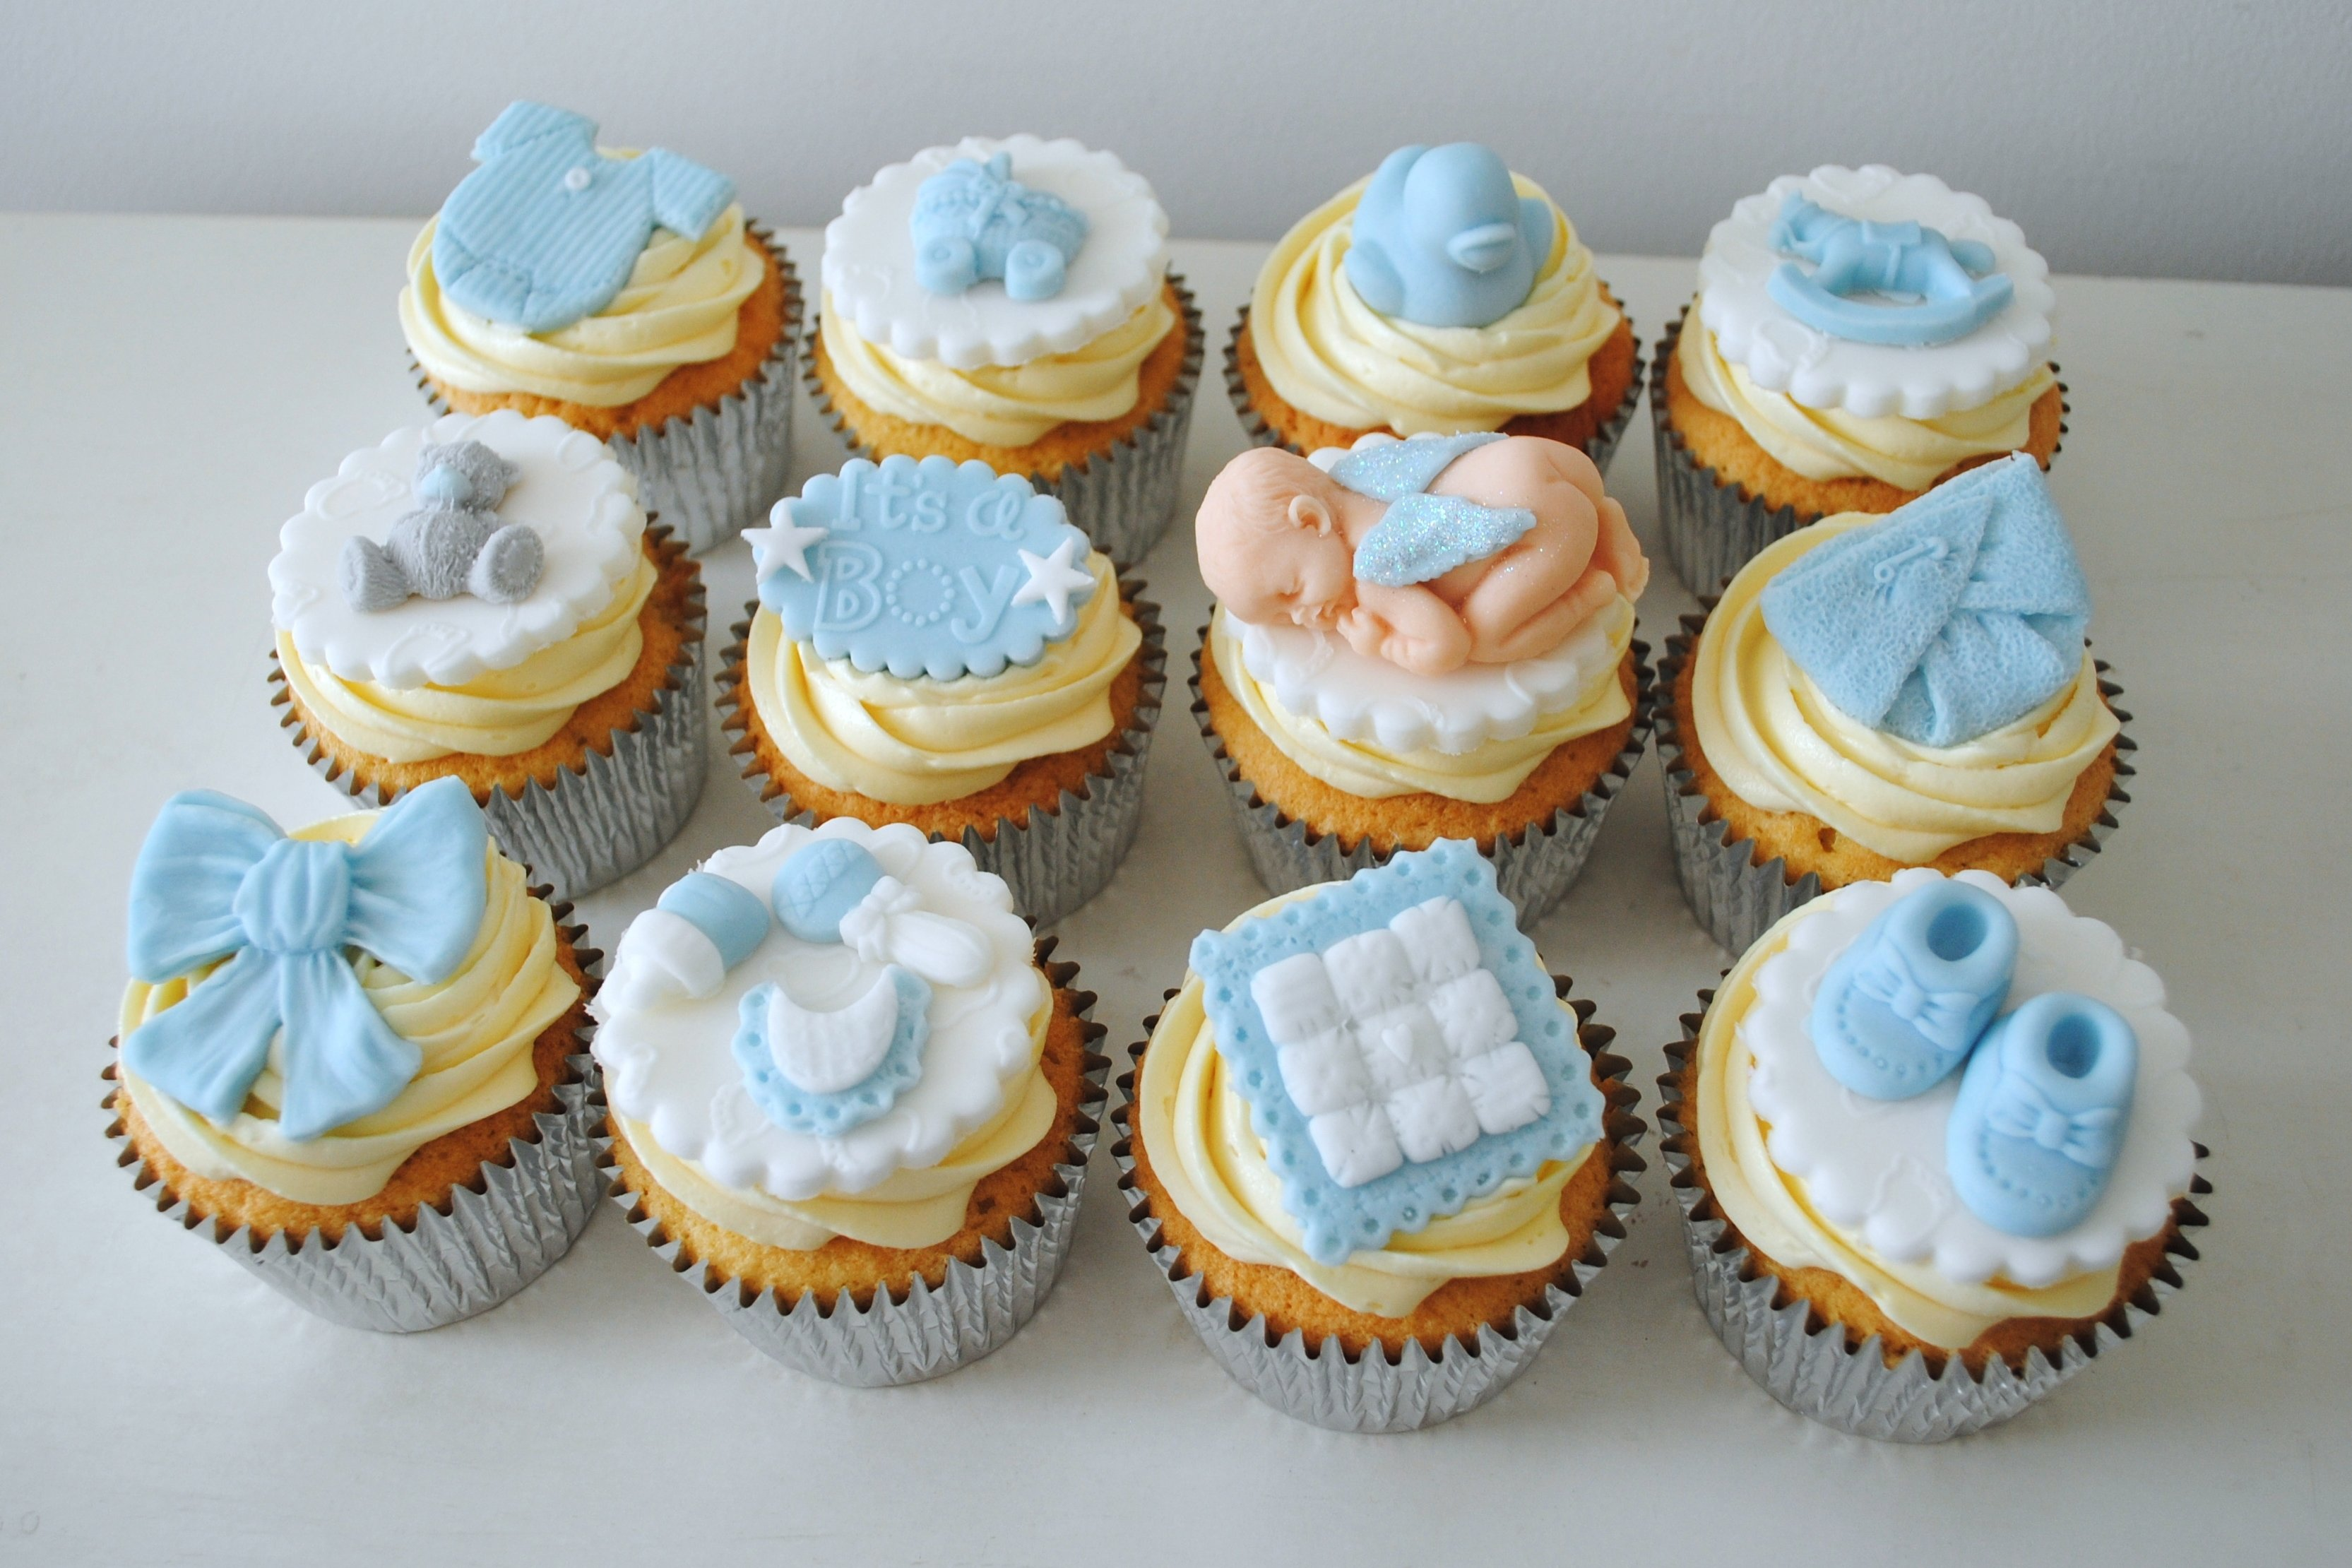 10 Famous Boy Baby Shower Cakes Ideas ideas baby shower cake for boy sports twin and girl designs cupcake 2020